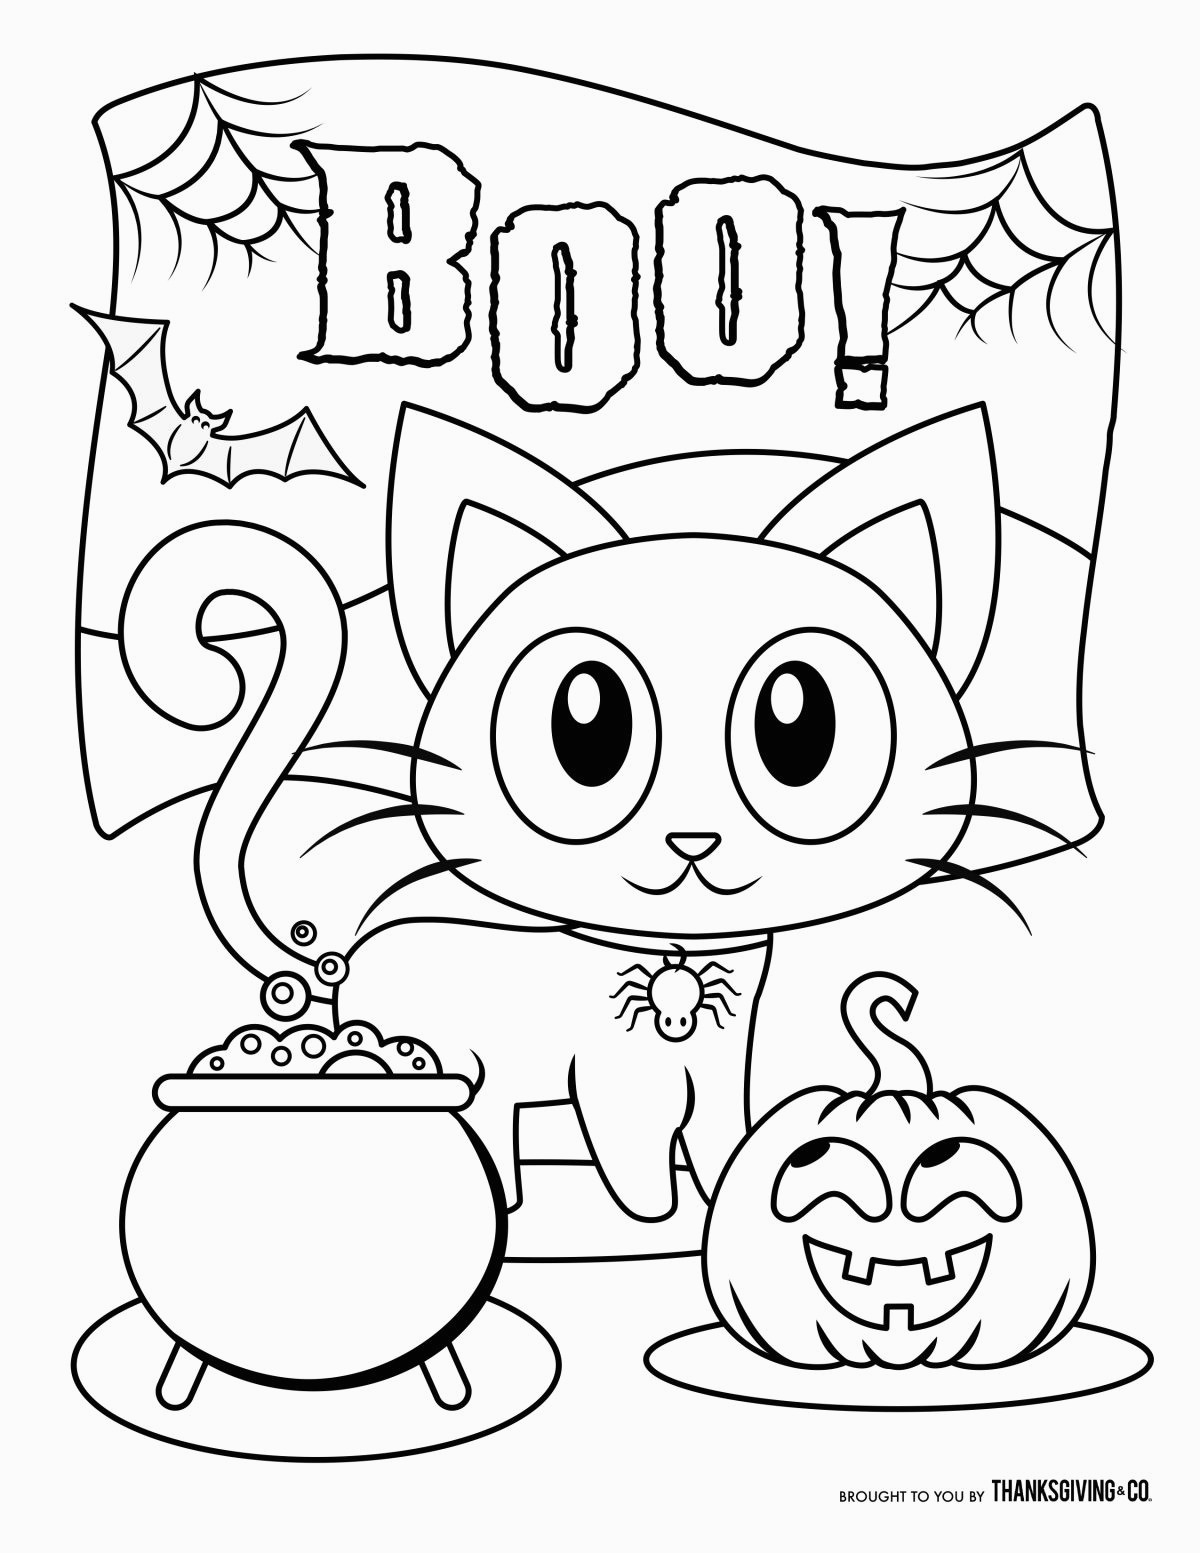 Halloween Coloring Pages Animals - sheapeterson